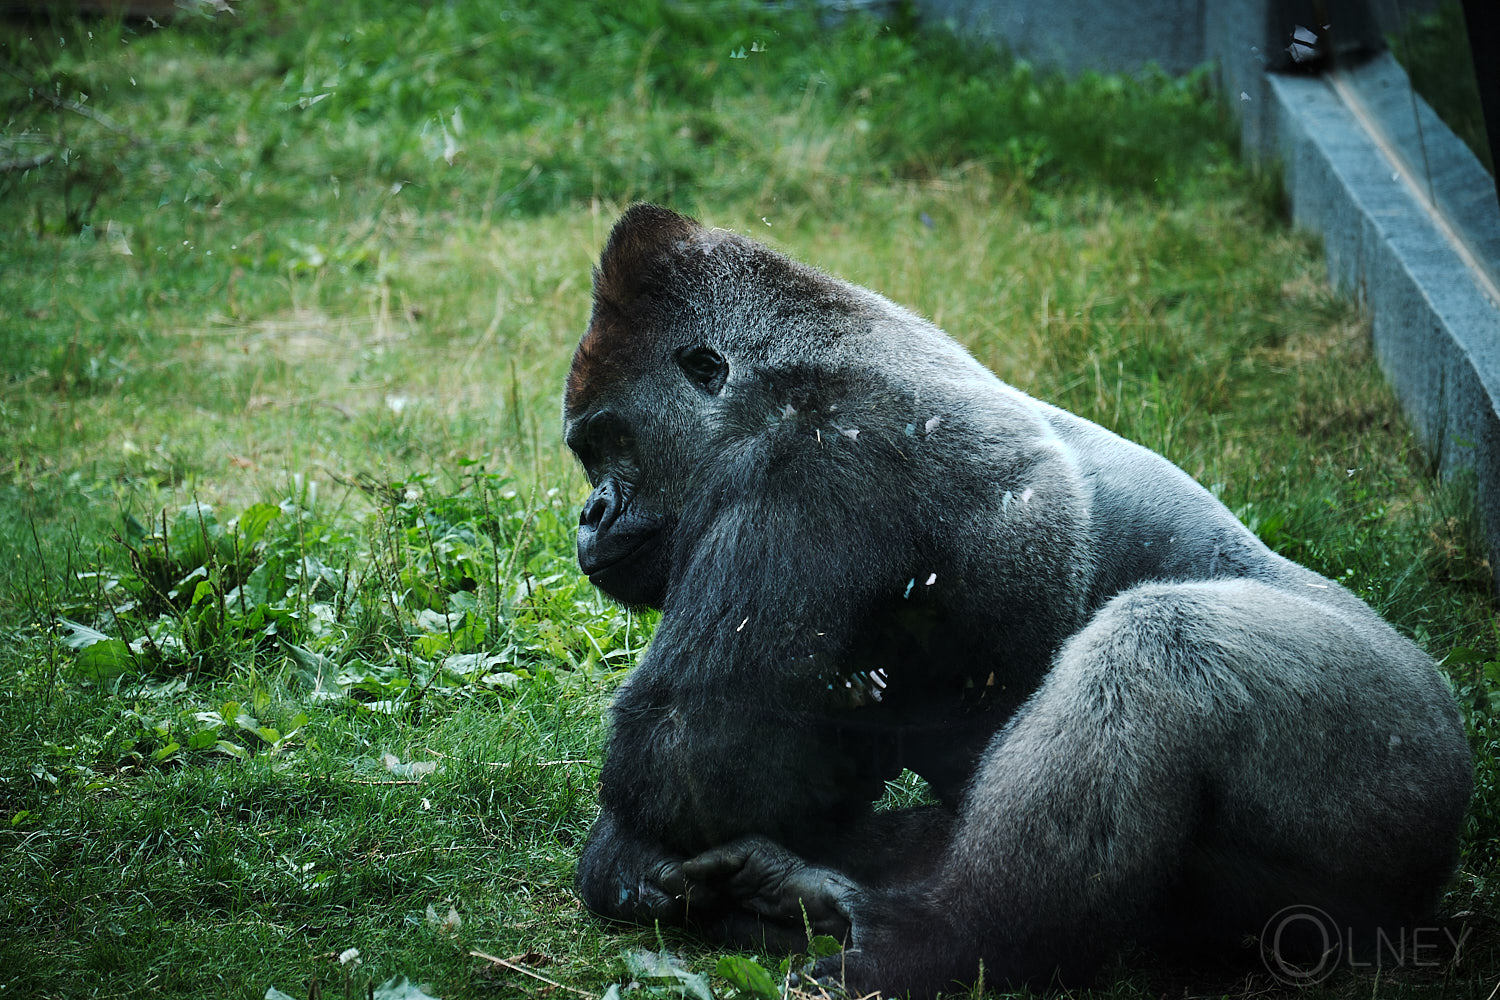 laid back gorilla at granby zoo